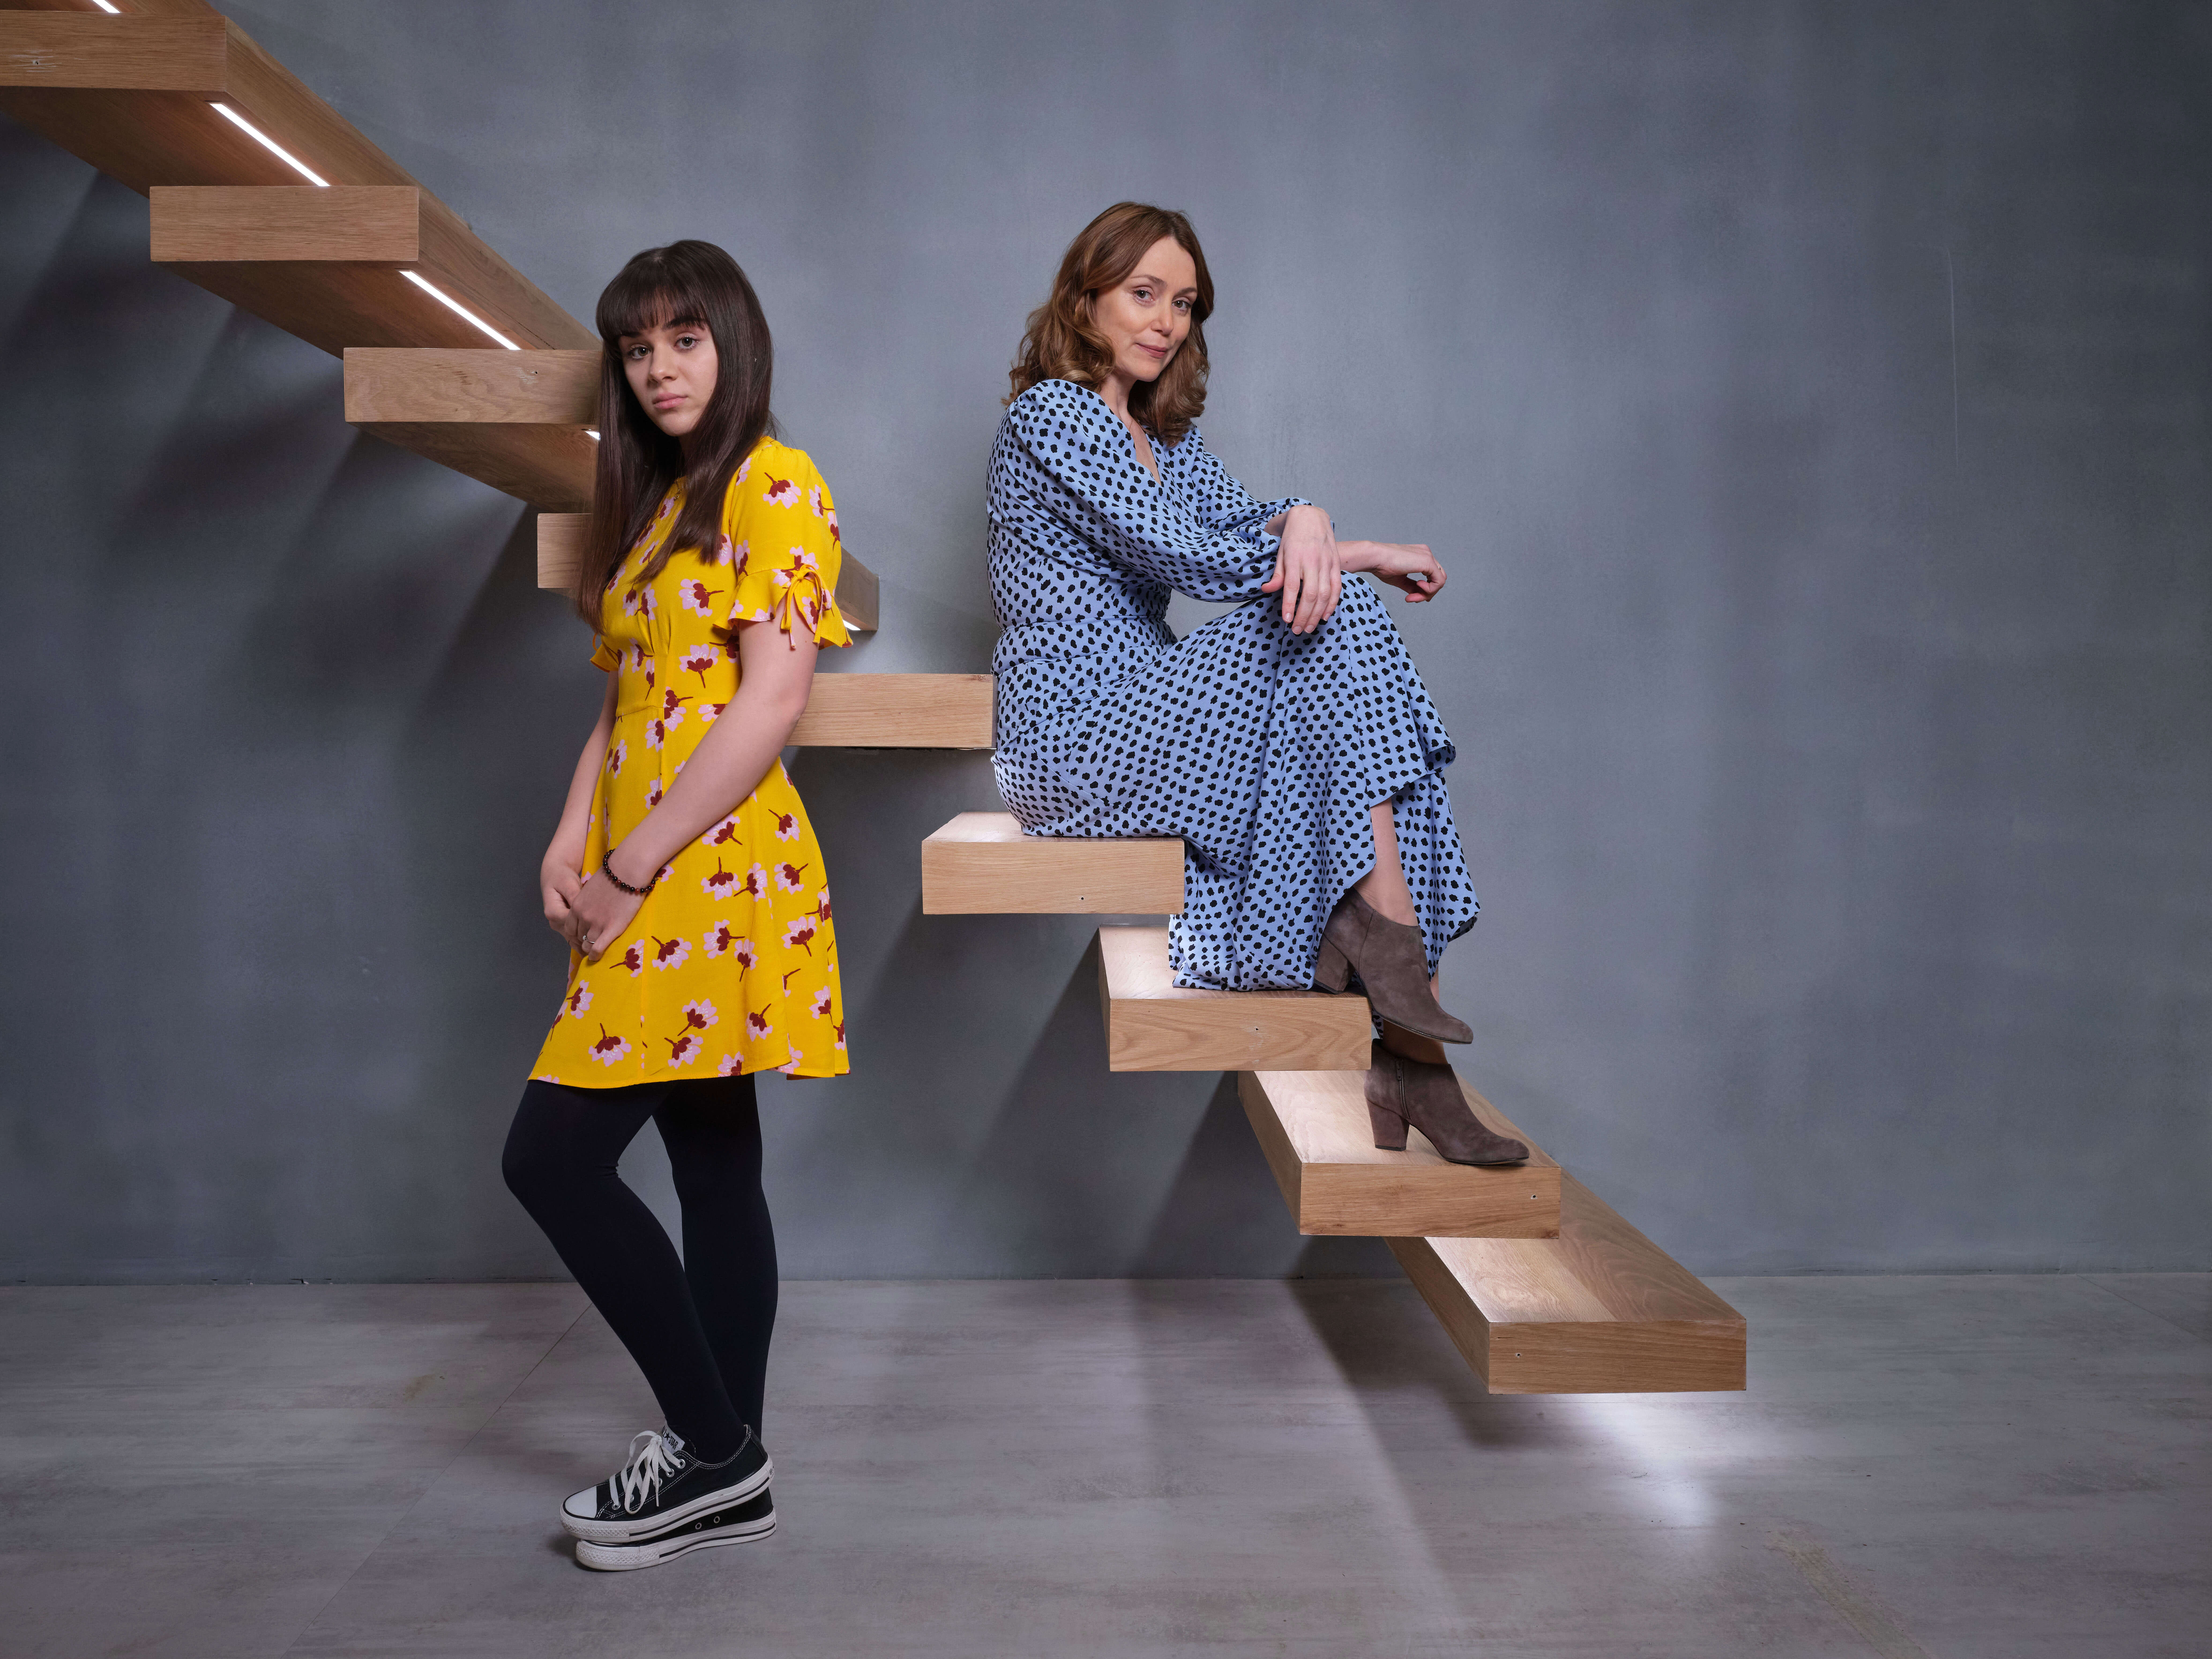 keeley hawes and isabella pappas in finding alice